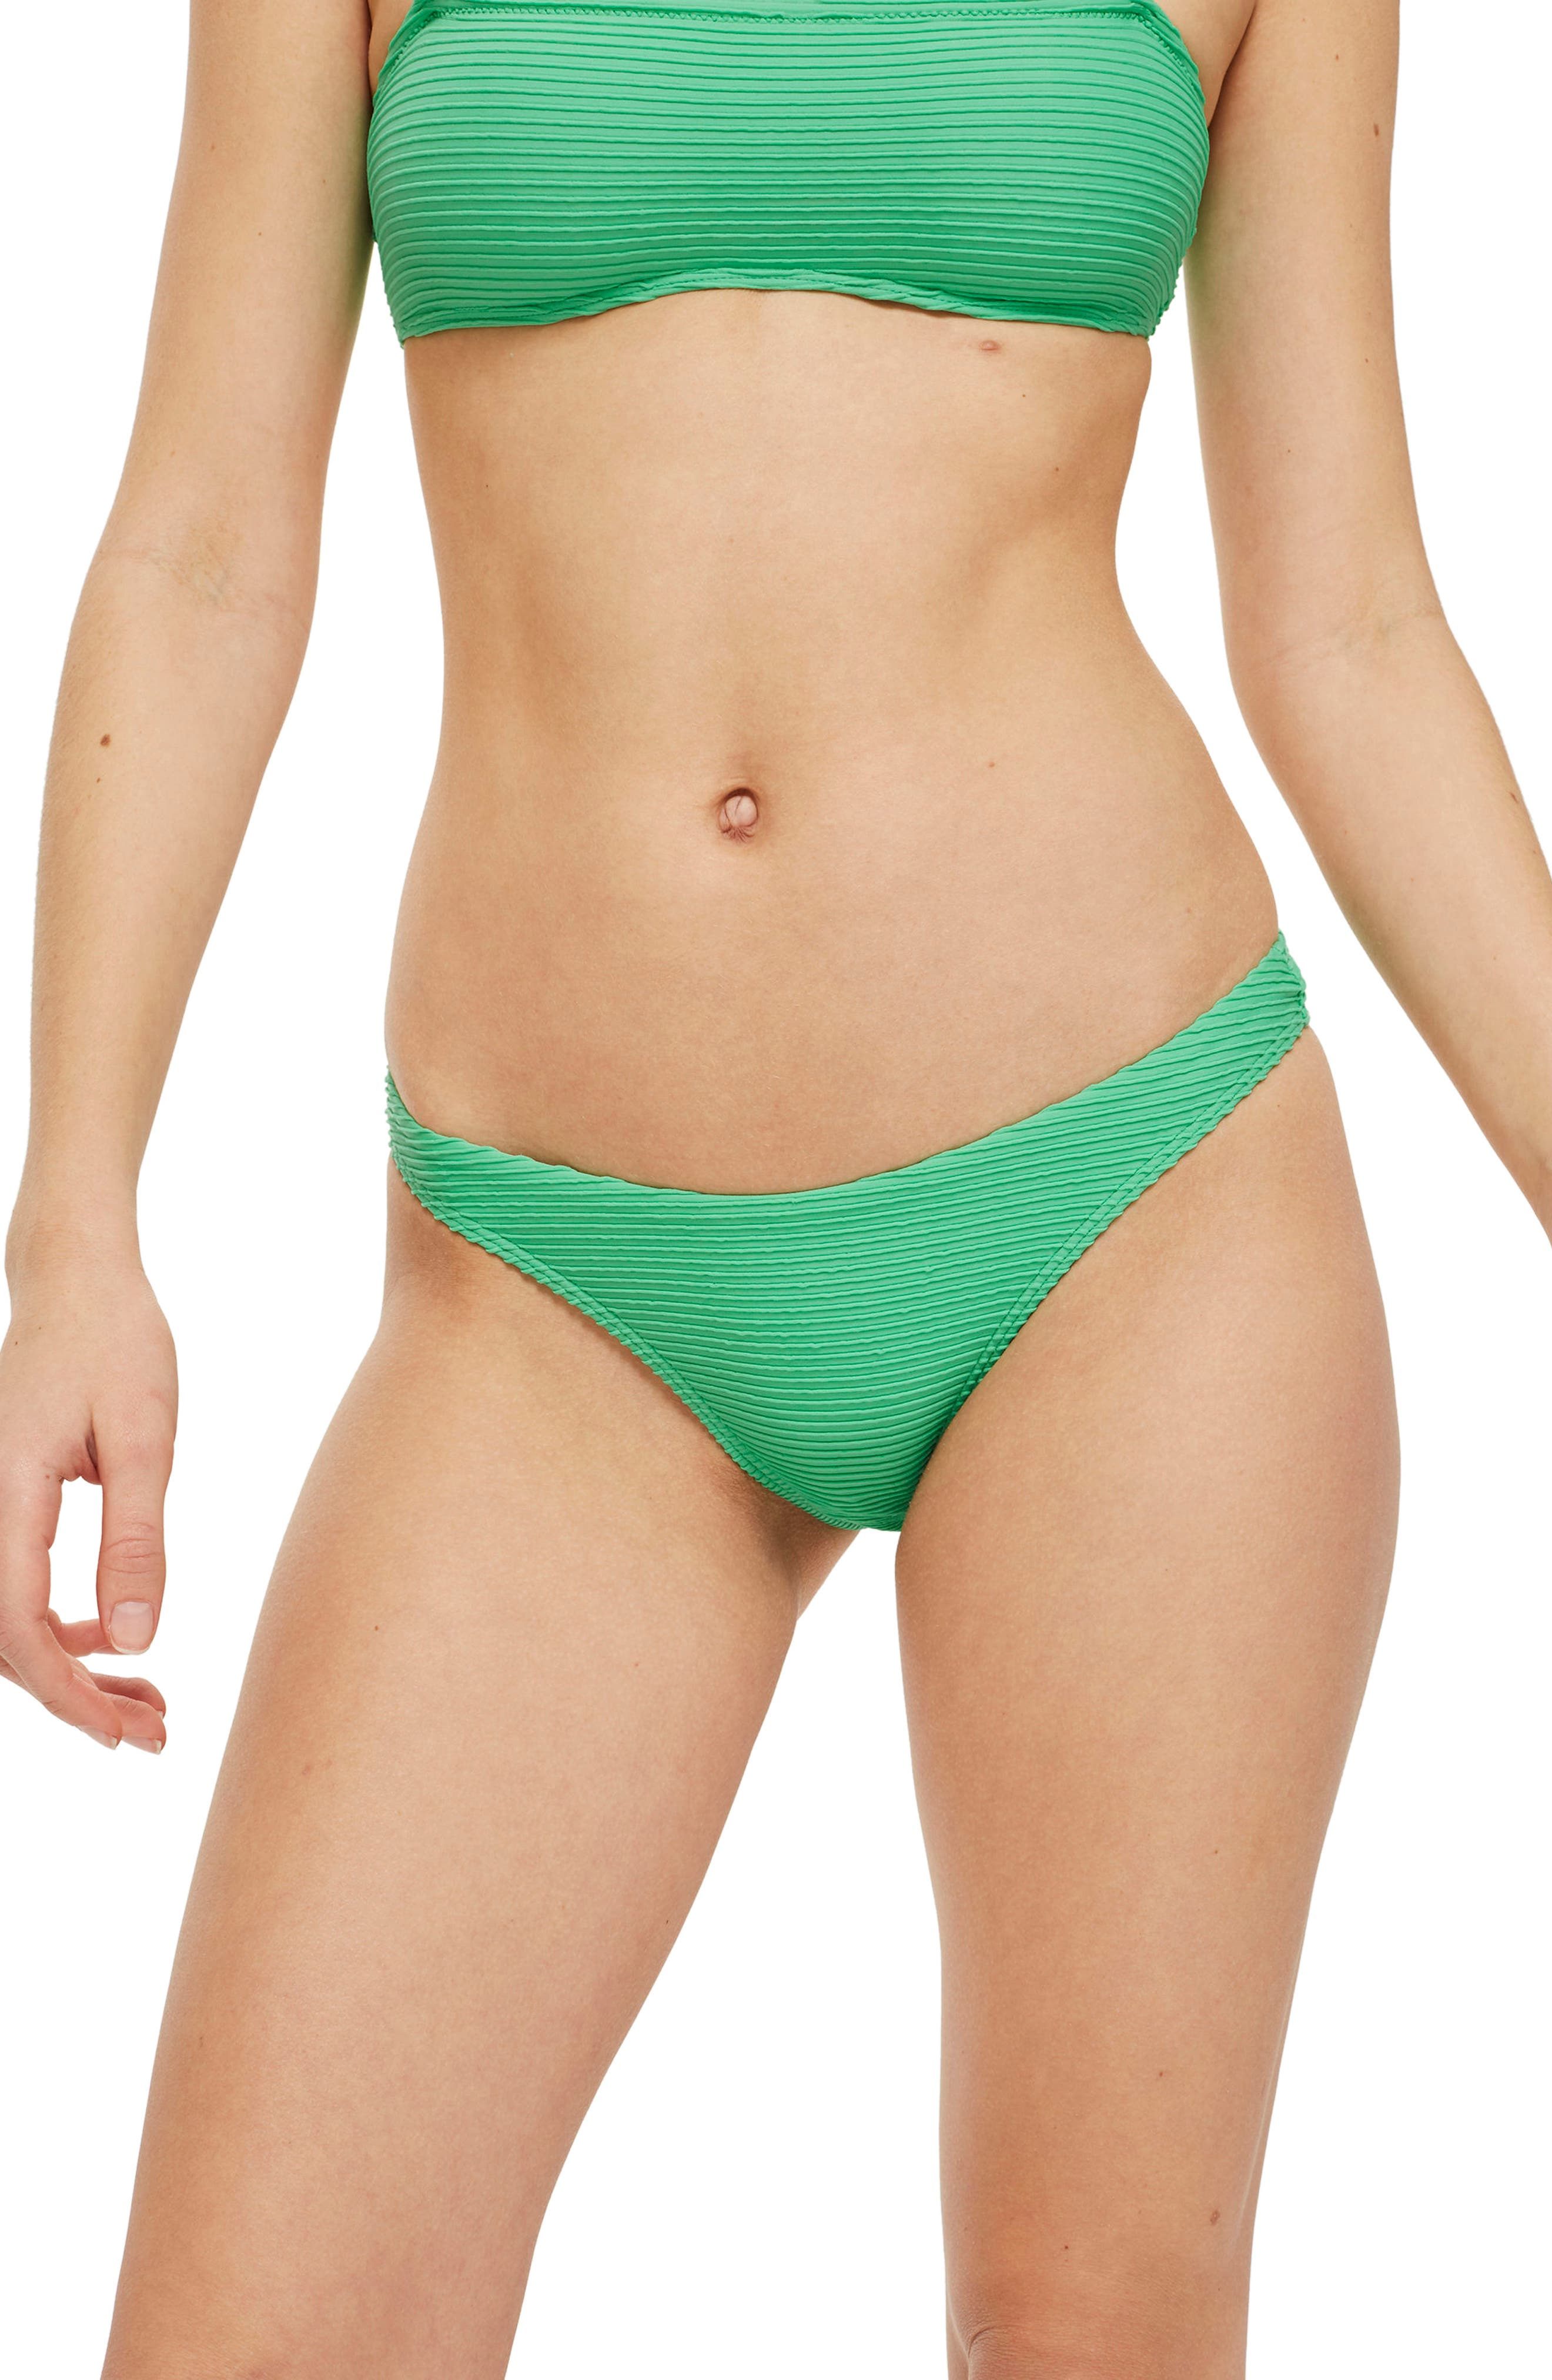 Ribbed High Leg Bikini Bottoms,                             Alternate thumbnail 3, color,                             Green